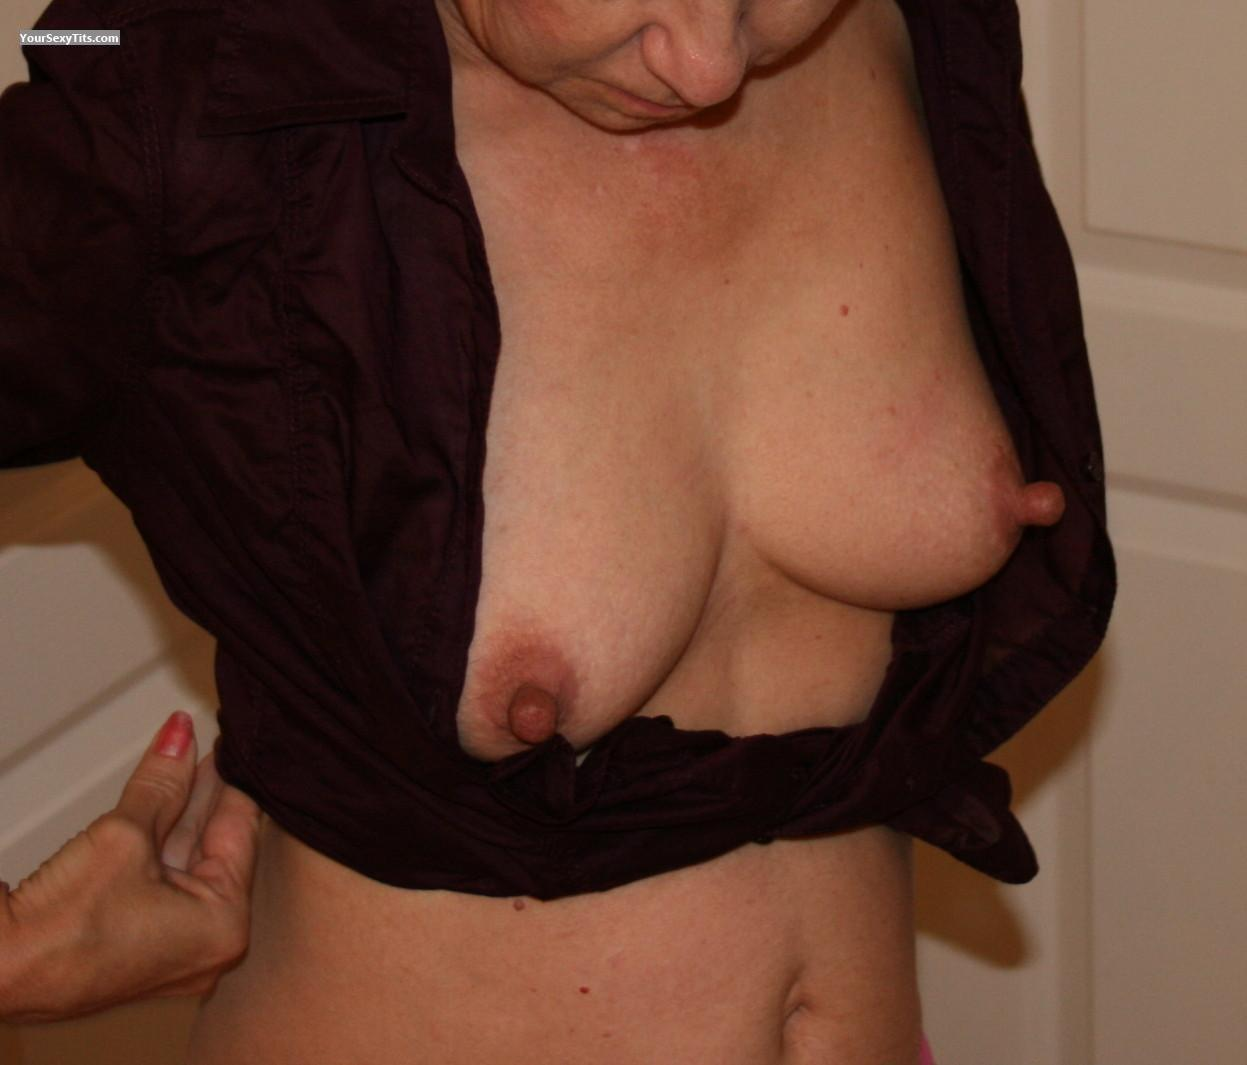 Short Haired Milf Small Tits